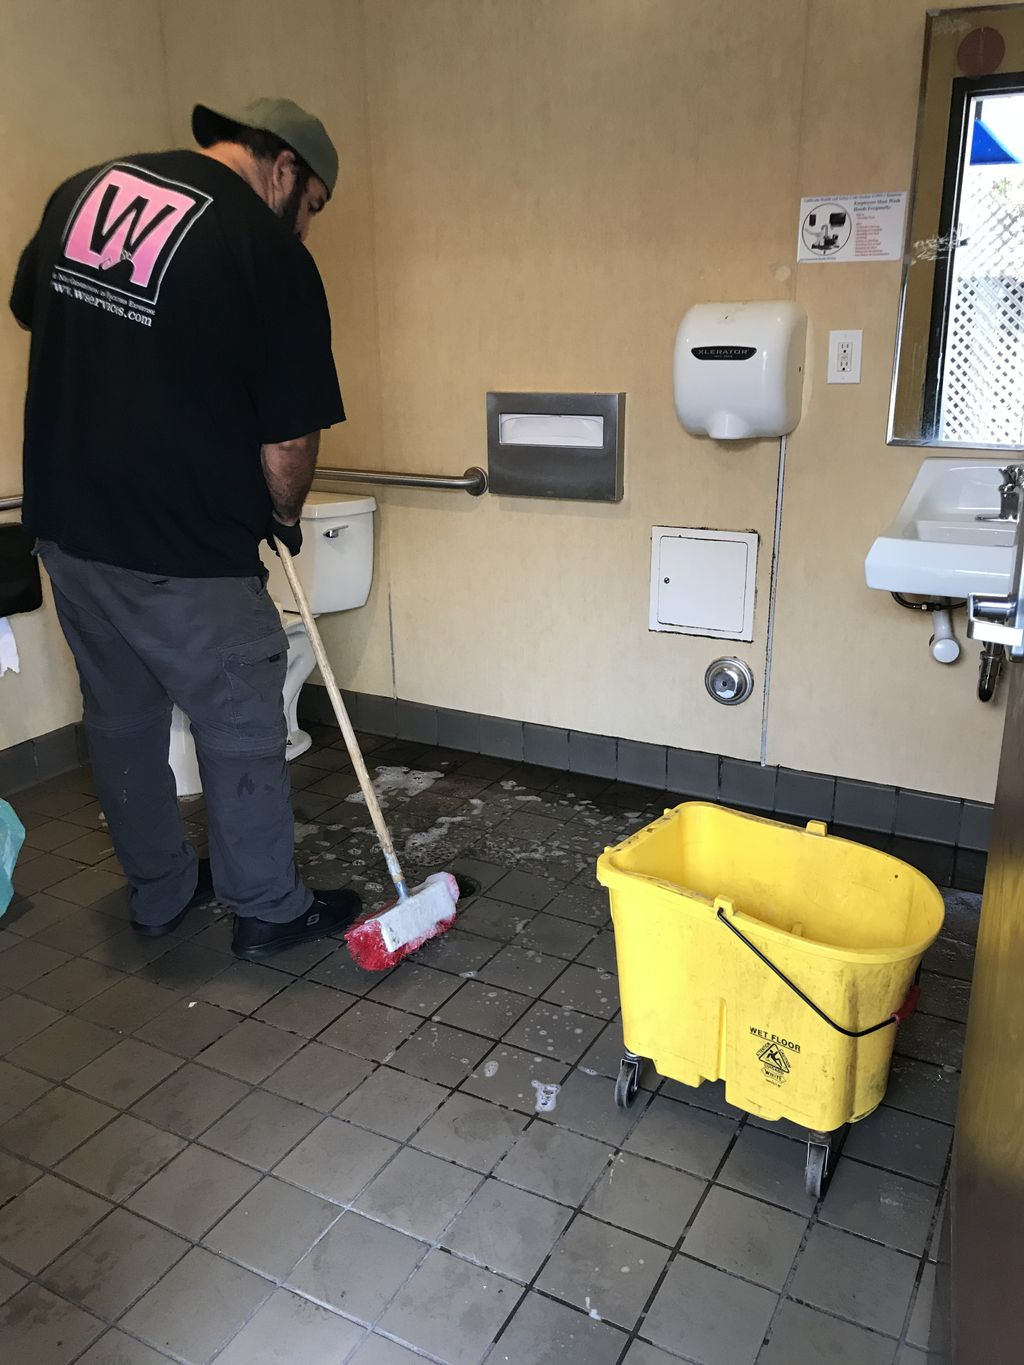 Deep cleaning during Covid-19